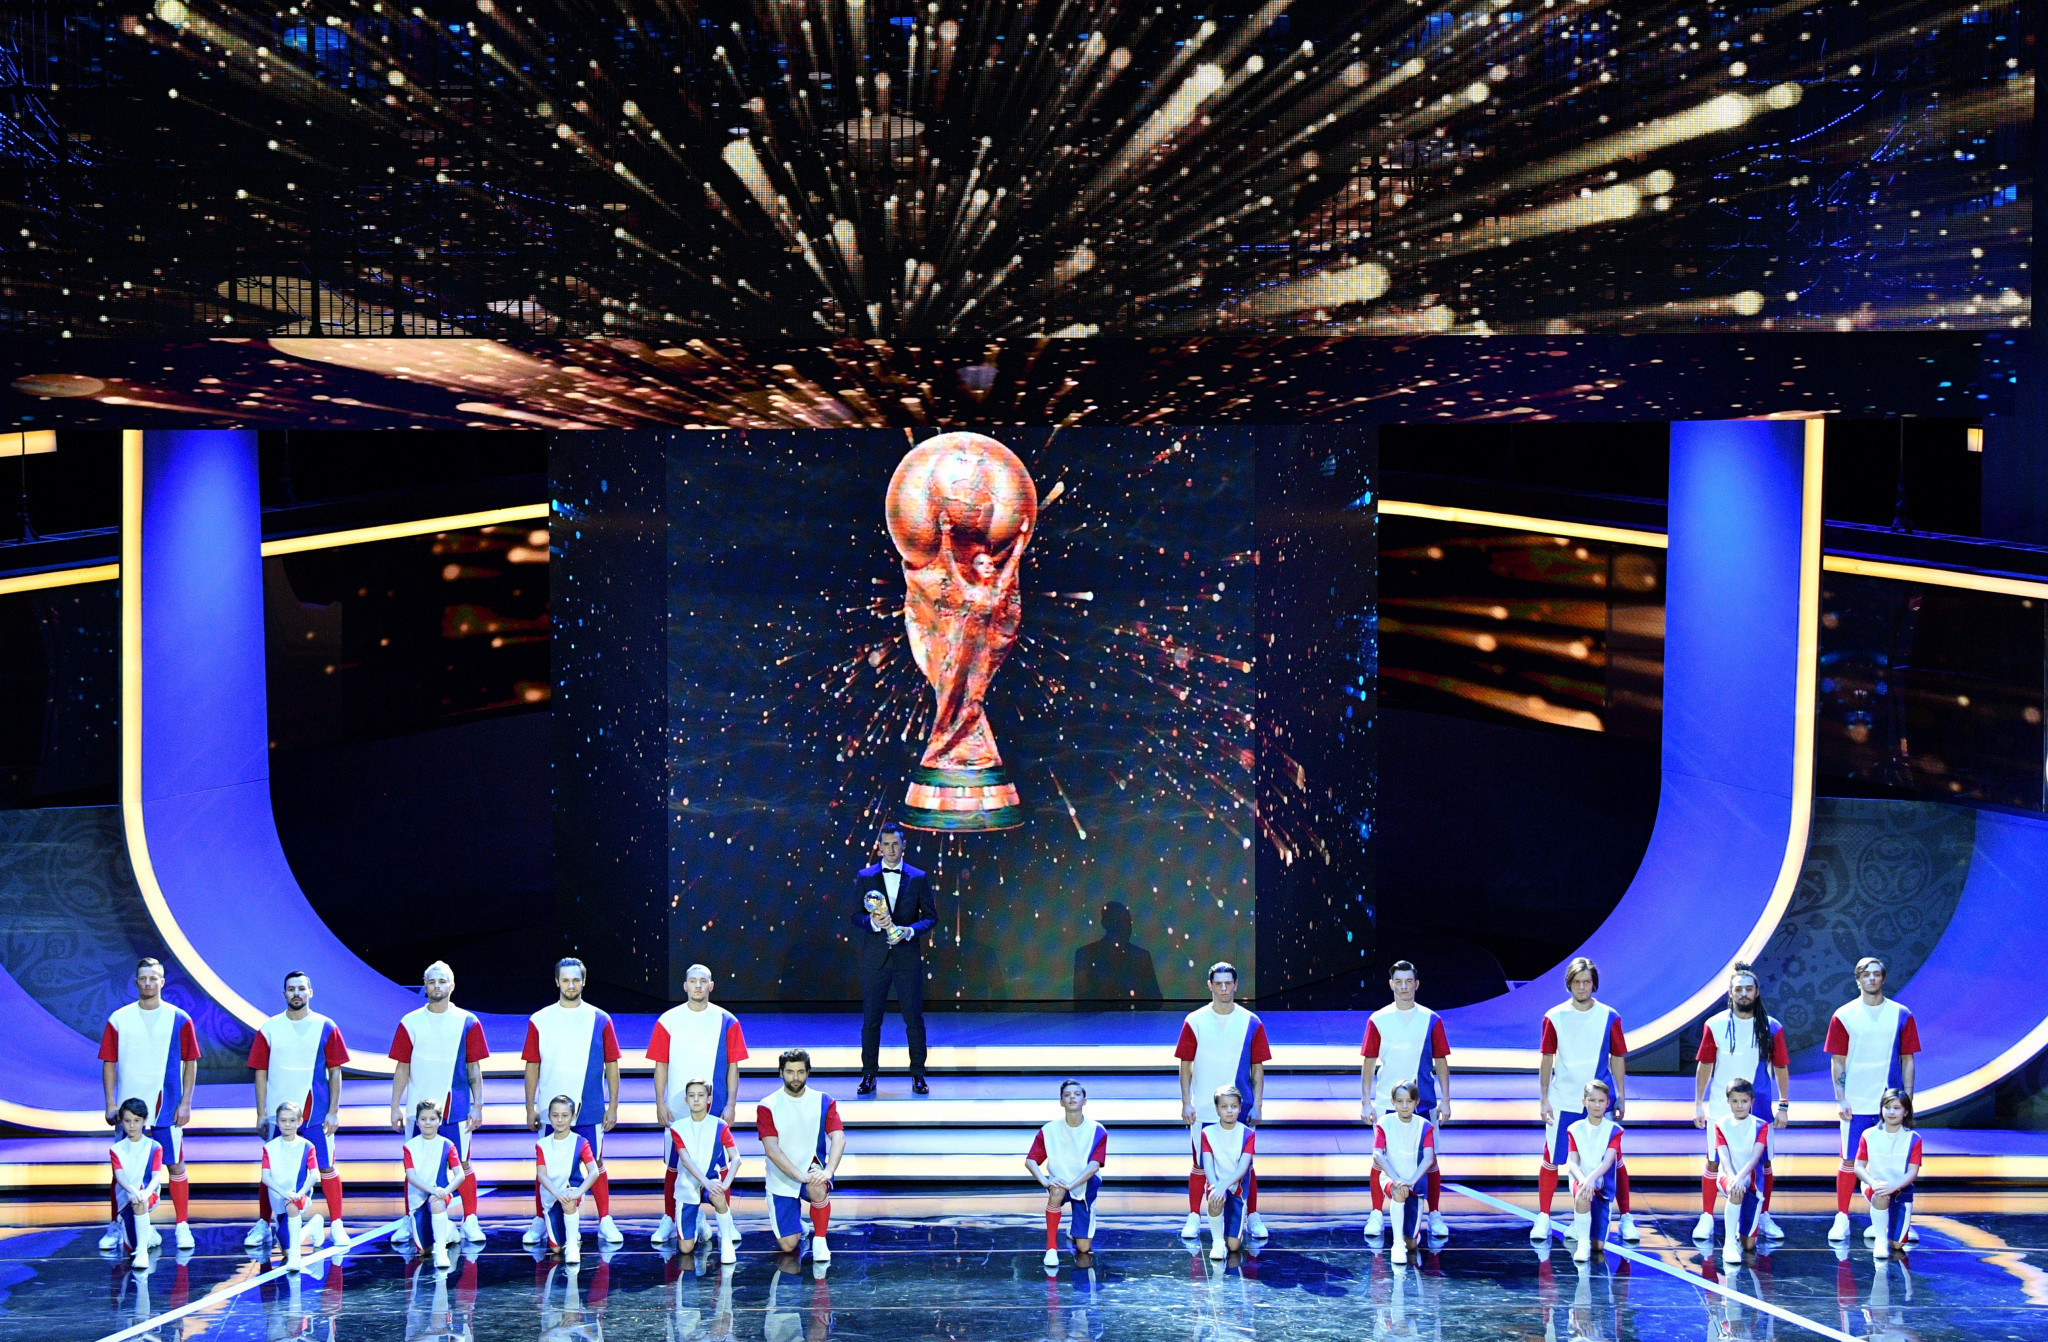 Second ticket sales phase for 2018 FIFA World Cup set to begin